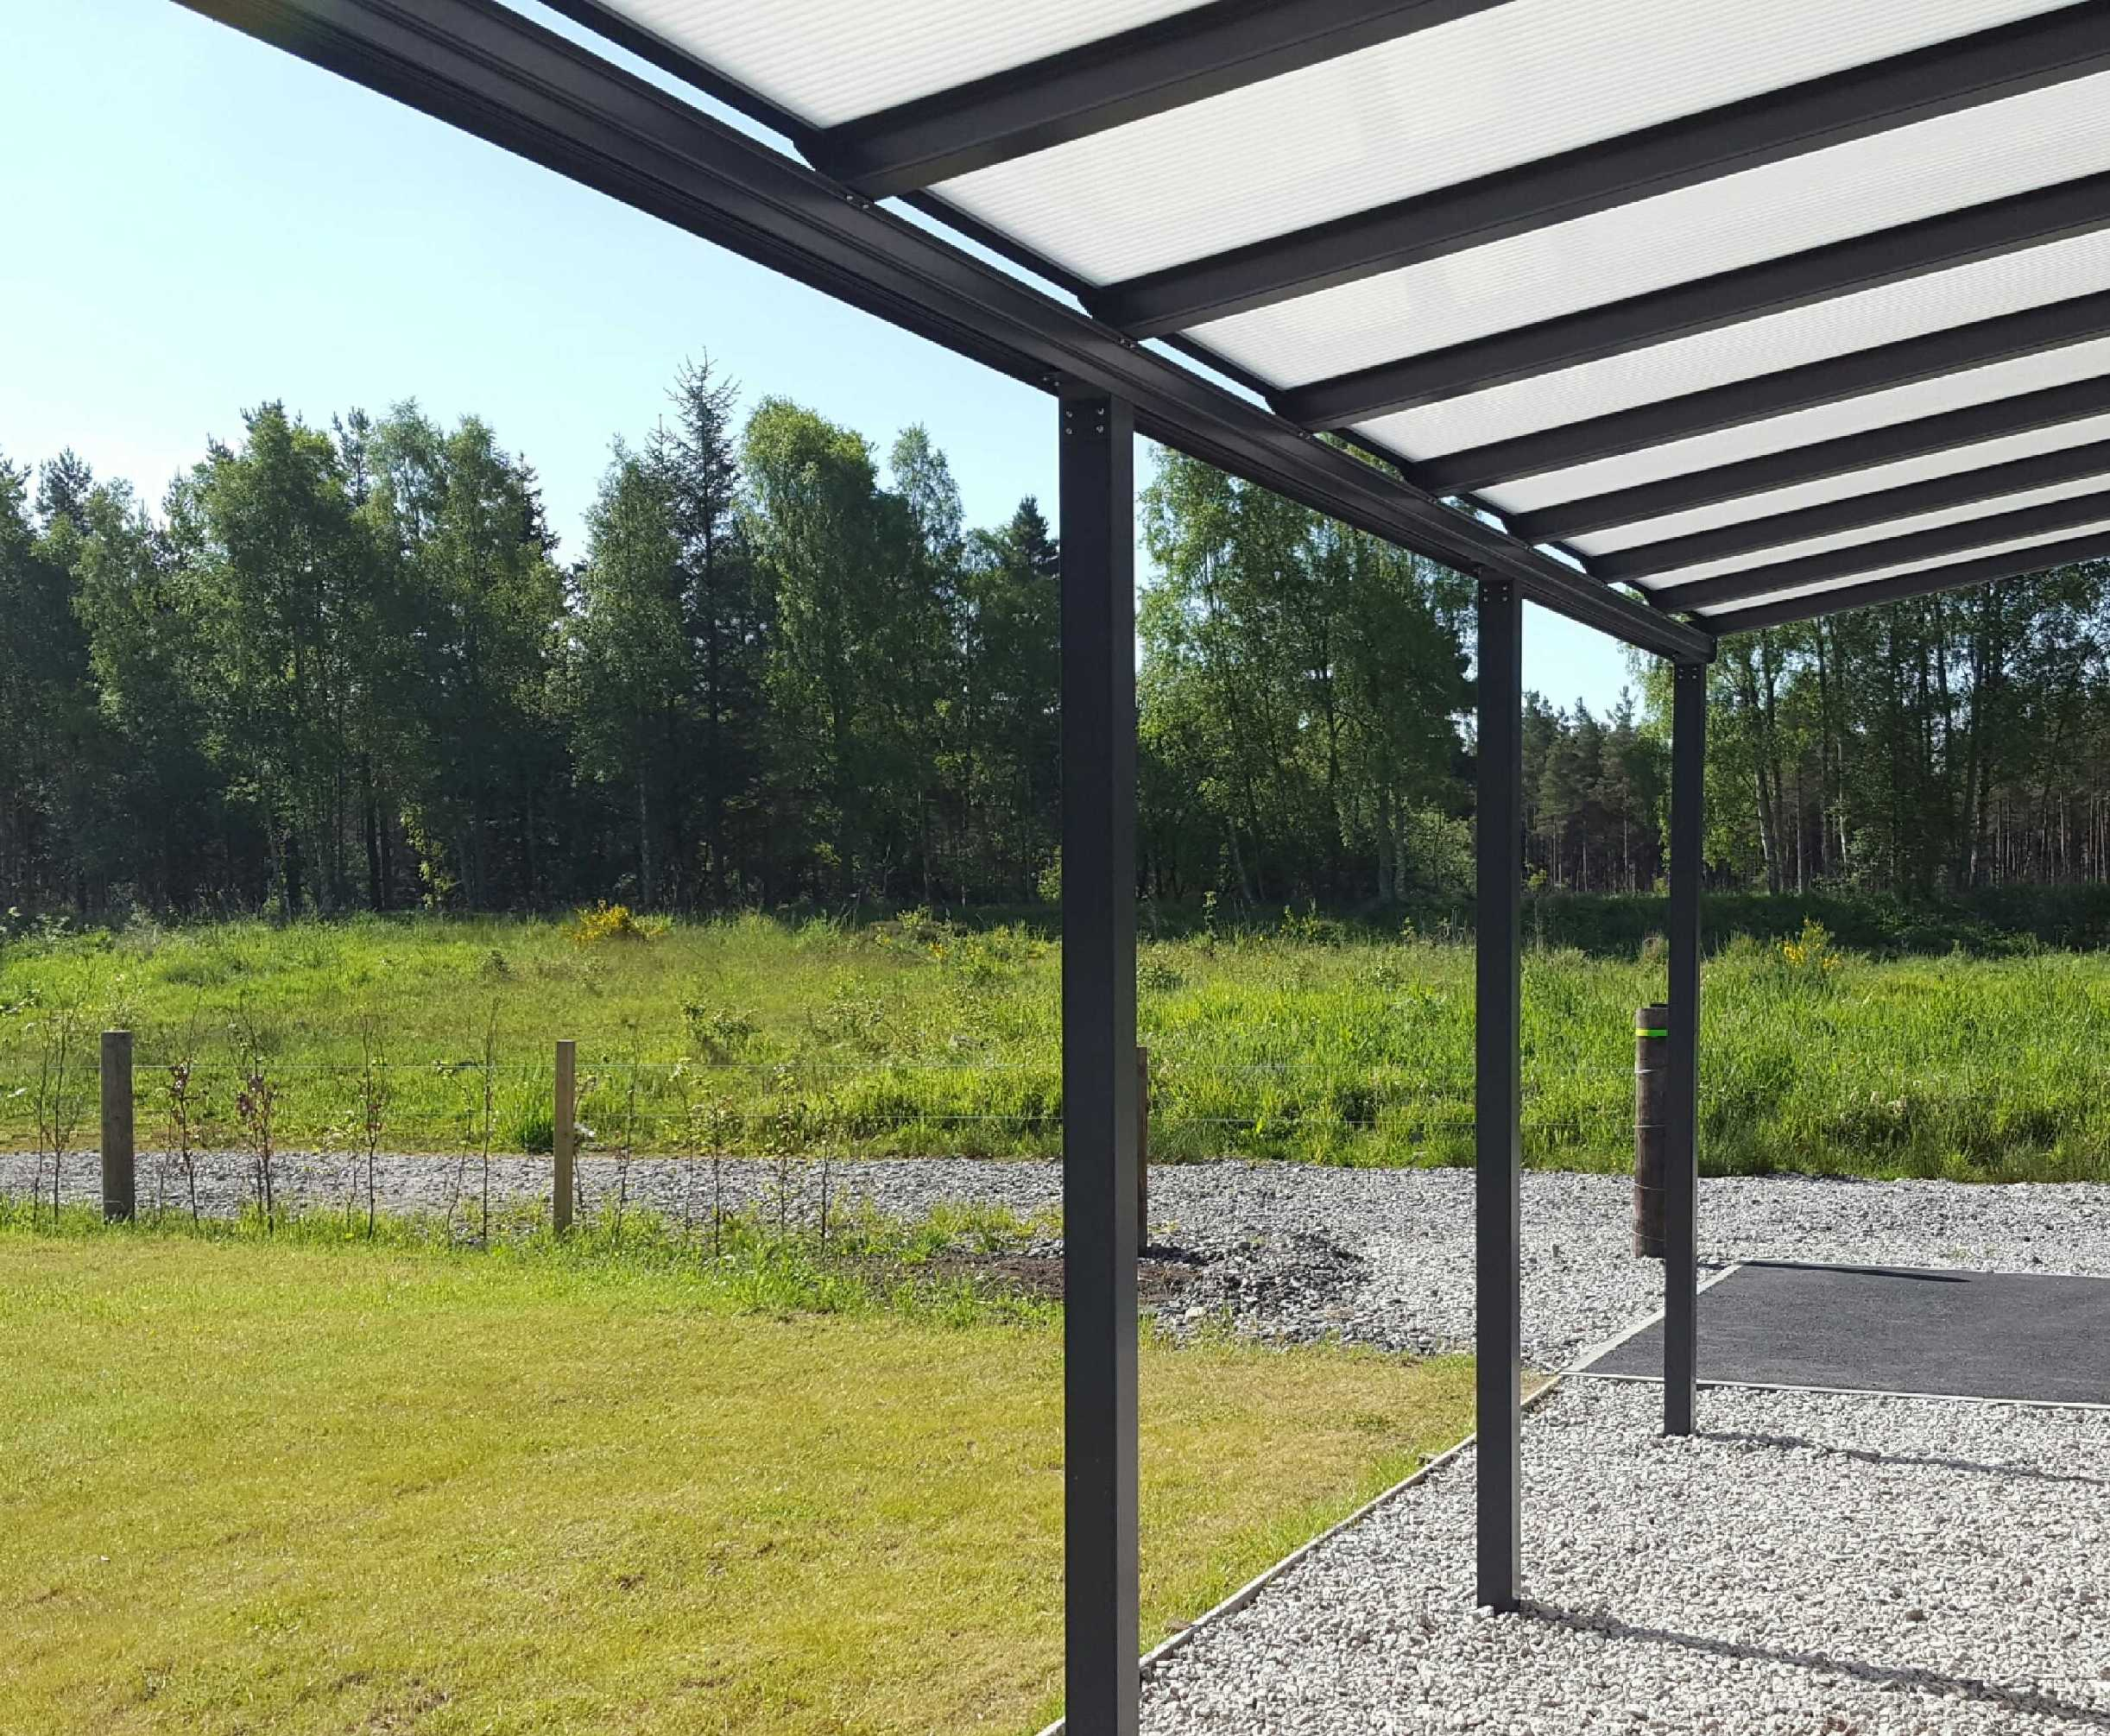 Omega Smart Lean-To Canopy, Anthracite Grey, 16mm Polycarbonate Glazing - 11.6m (W) x 3.0m (P), (5) Supporting Posts